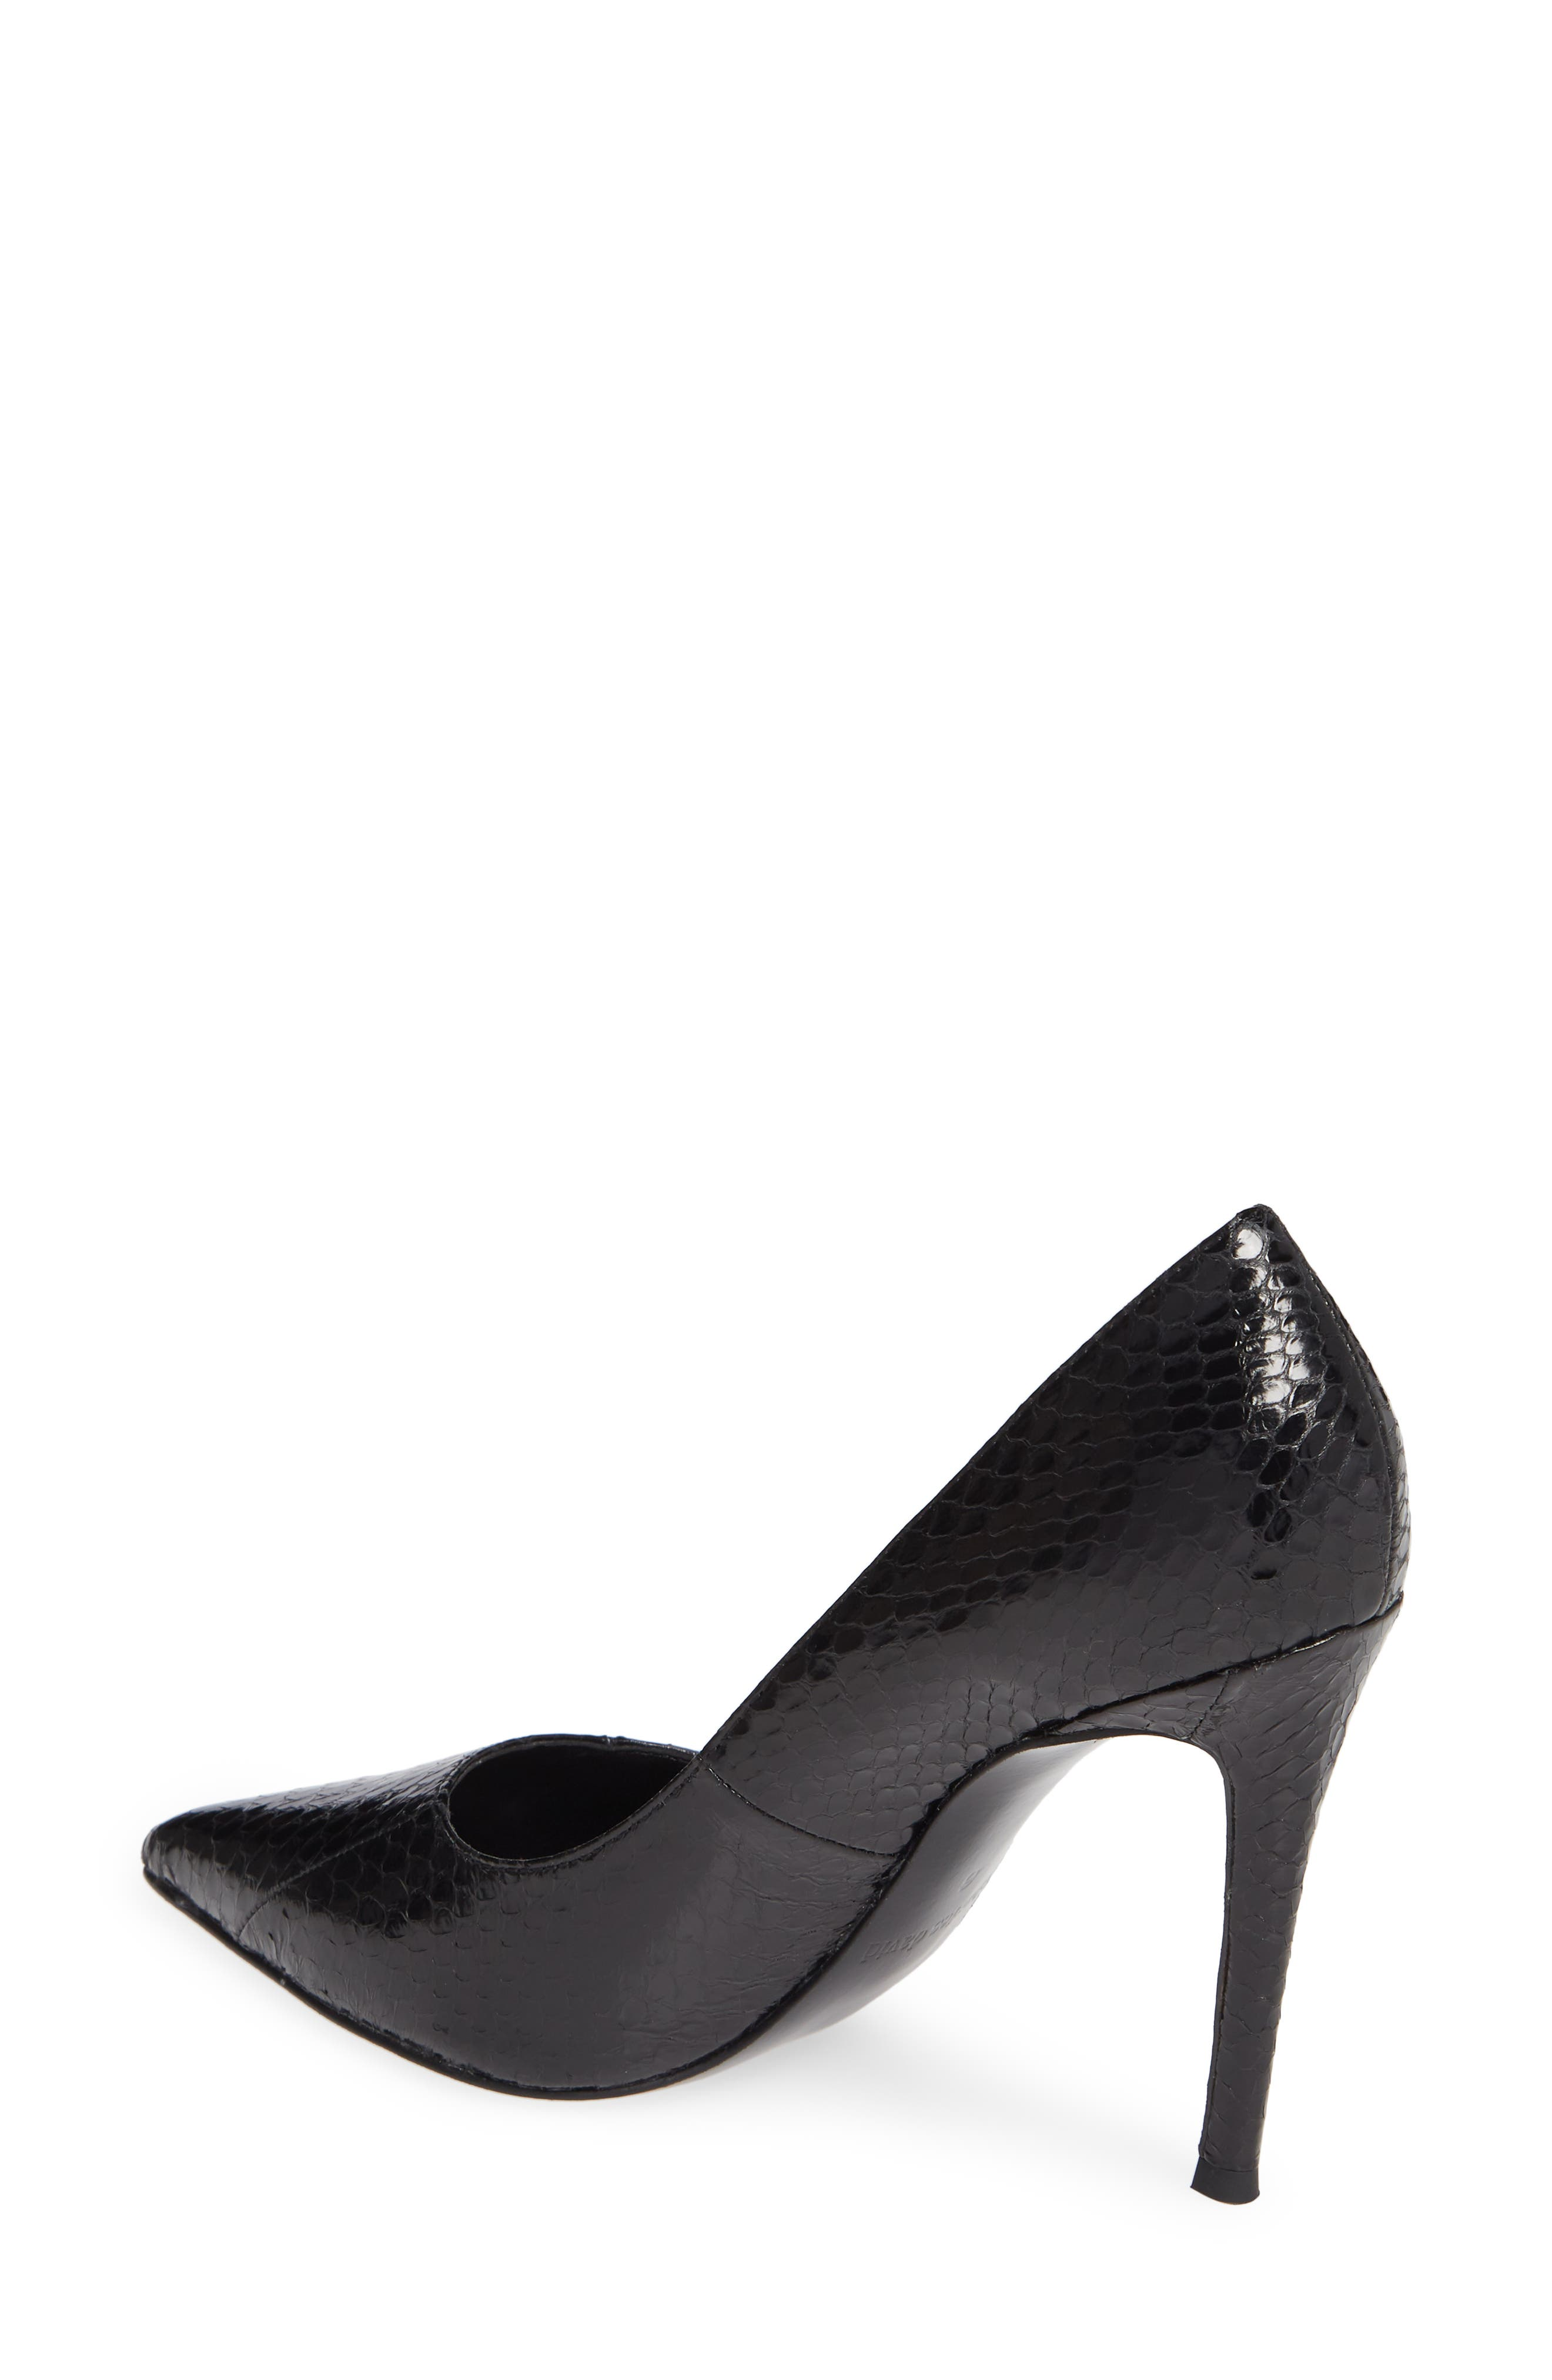 Calessi Pointy Toe Pump,                             Alternate thumbnail 2, color,                             BLACK SNAKE PRINT LEATHER